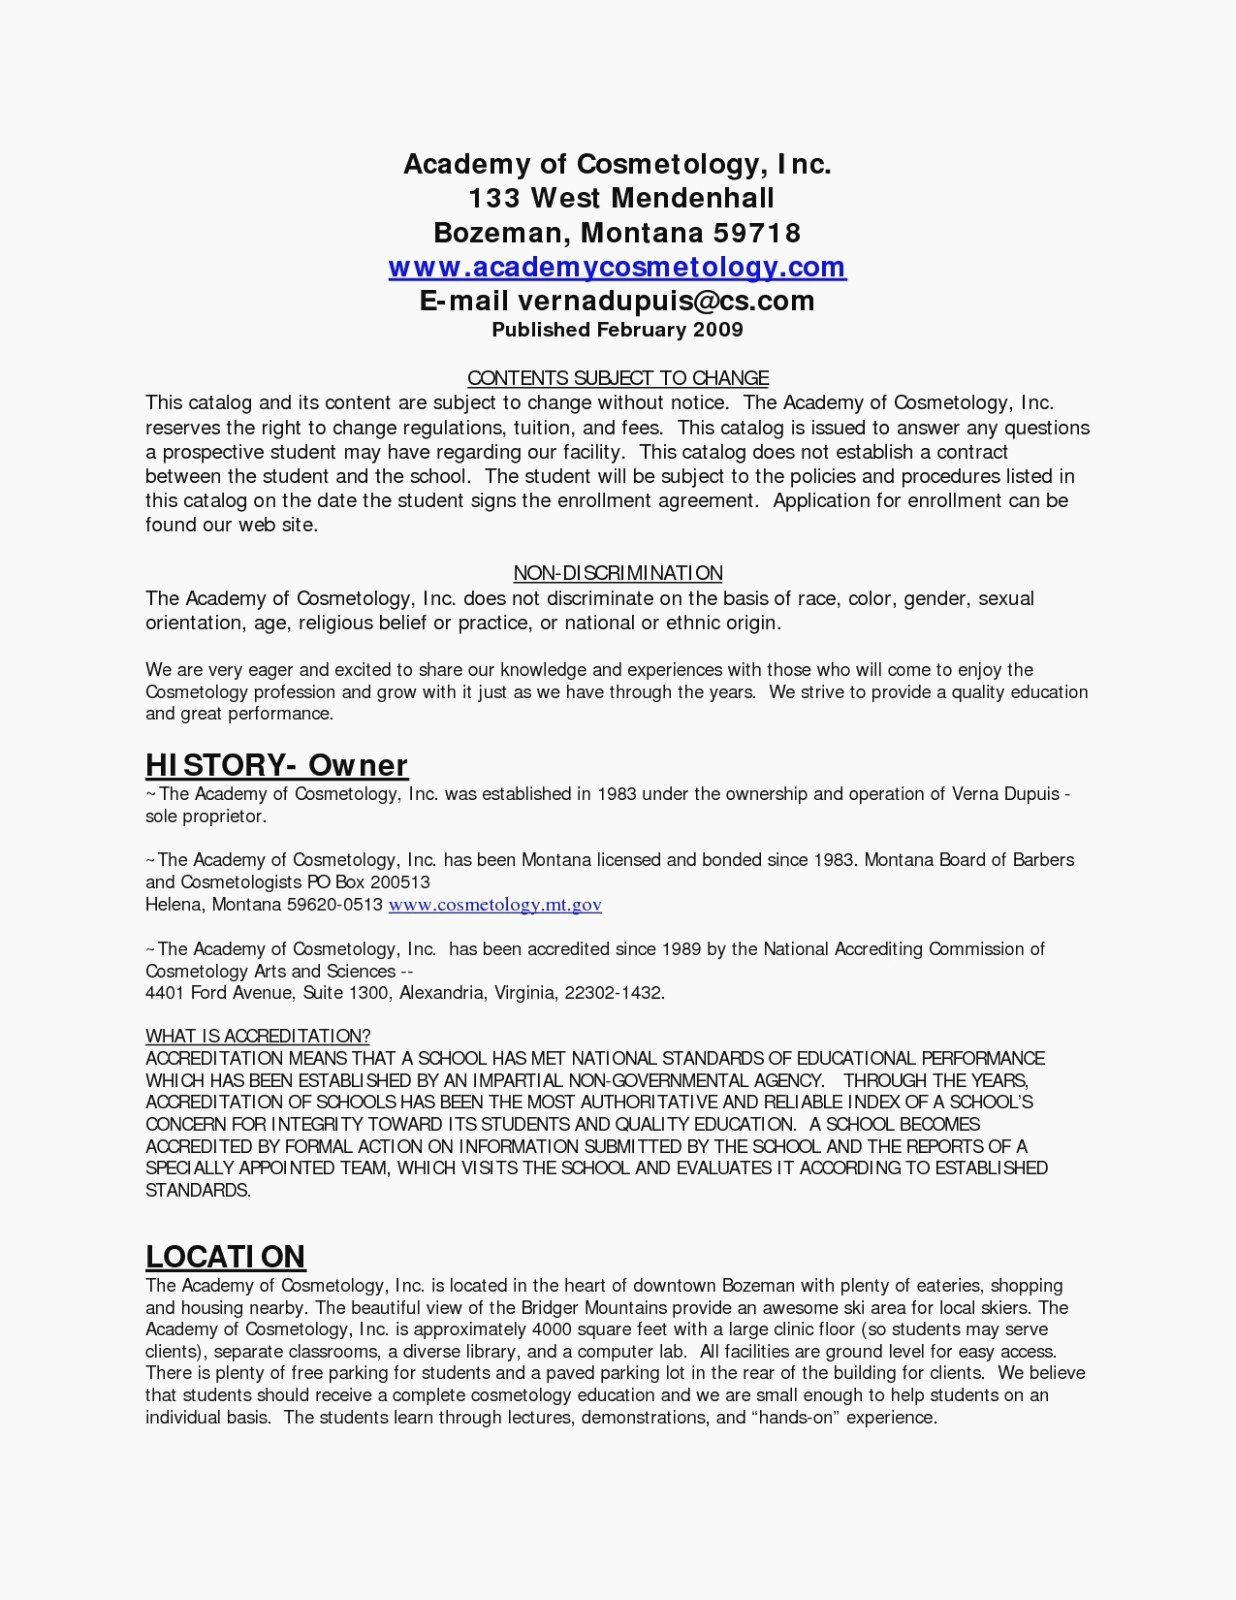 25 Cosmetology Resume Templates Free in 2020 Resume